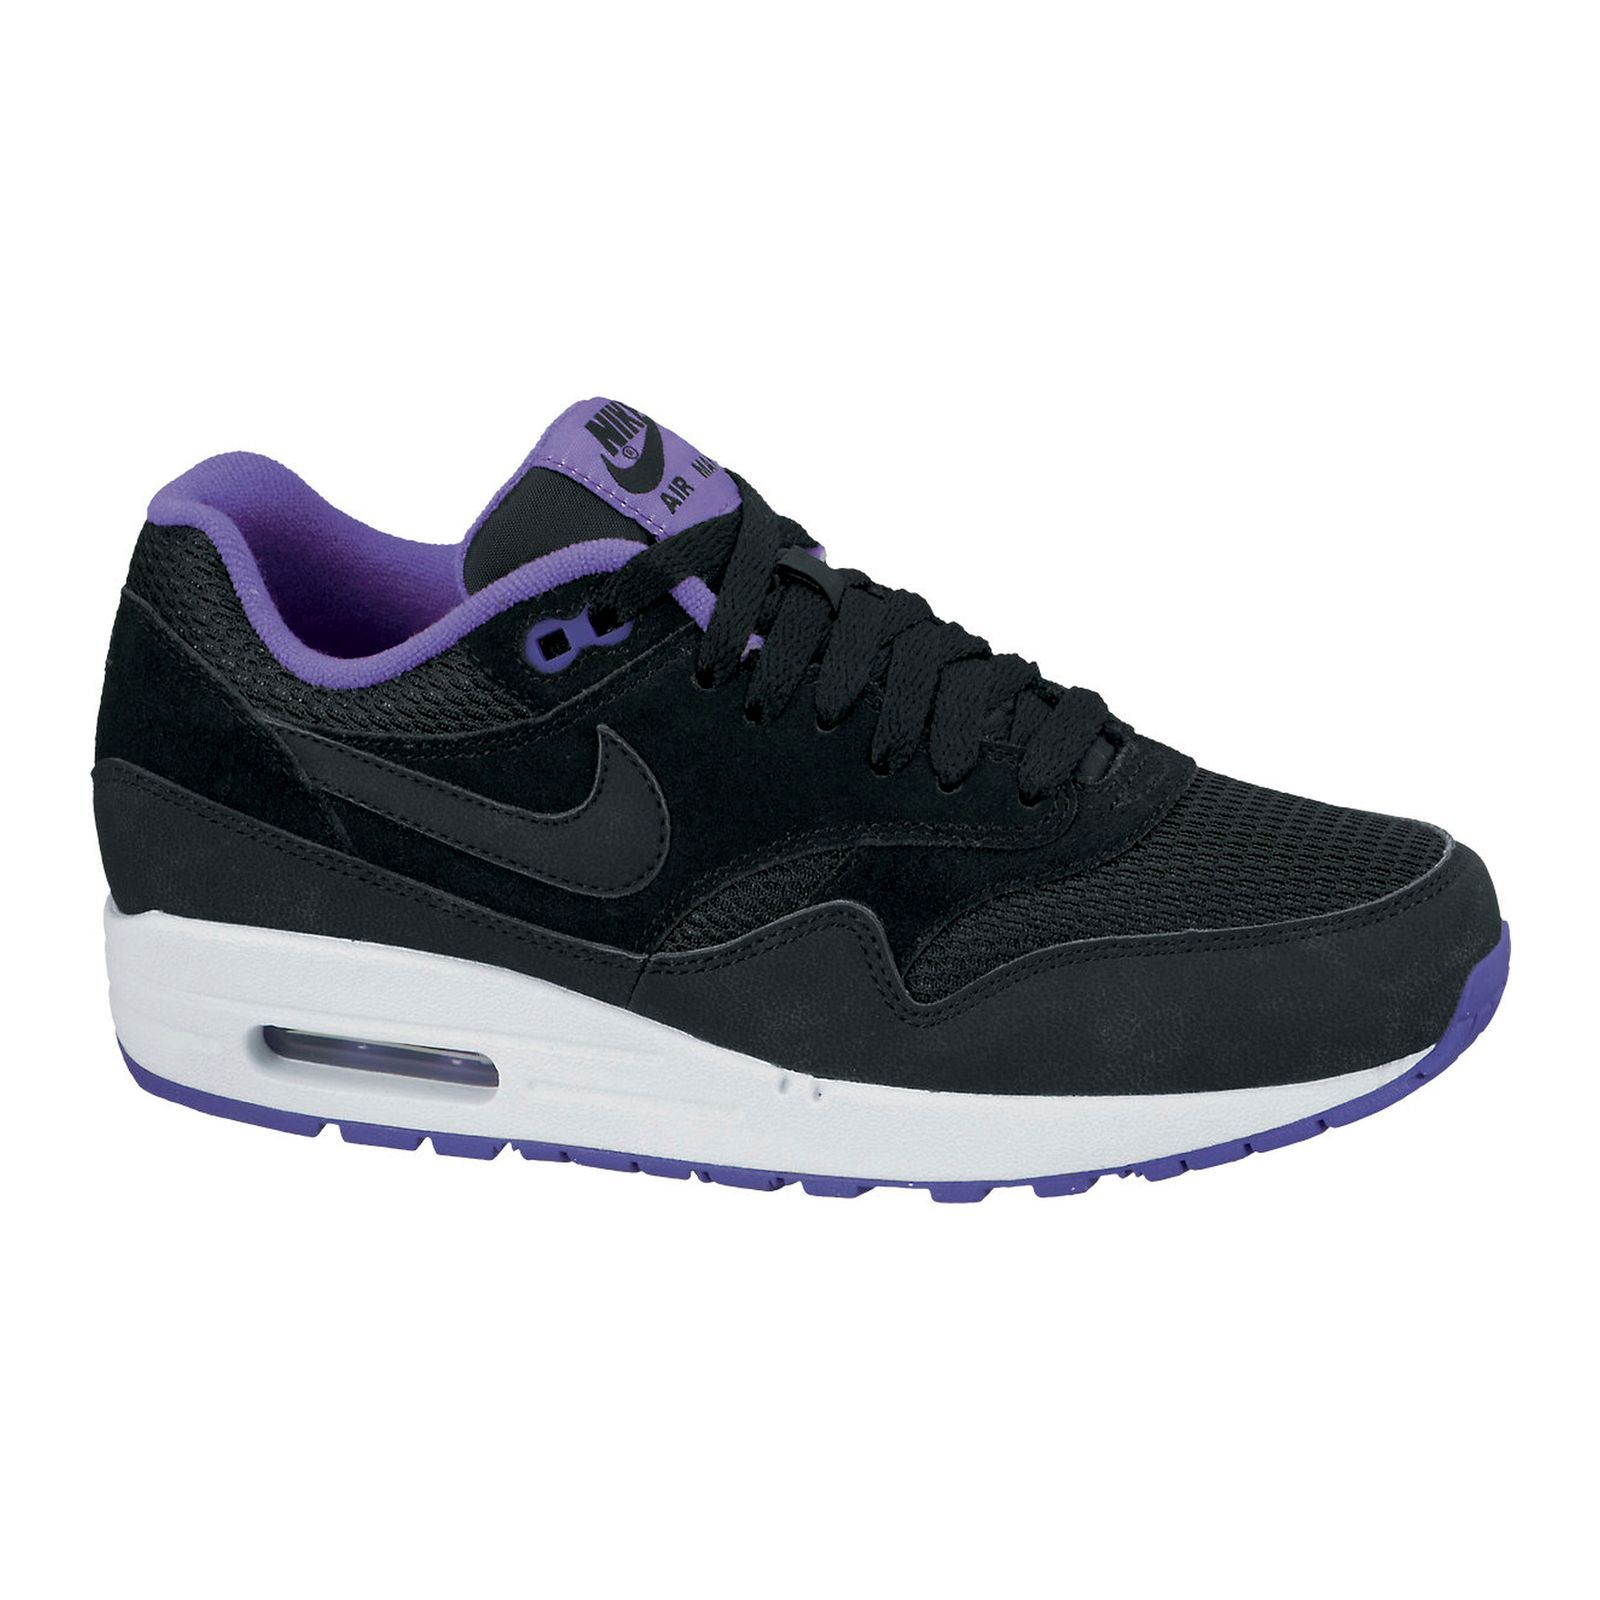 uk availability d8656 94fe9 ... Nike AIR MAX 1 ESSENTIAL - Baskets - noires   Brandalley ...